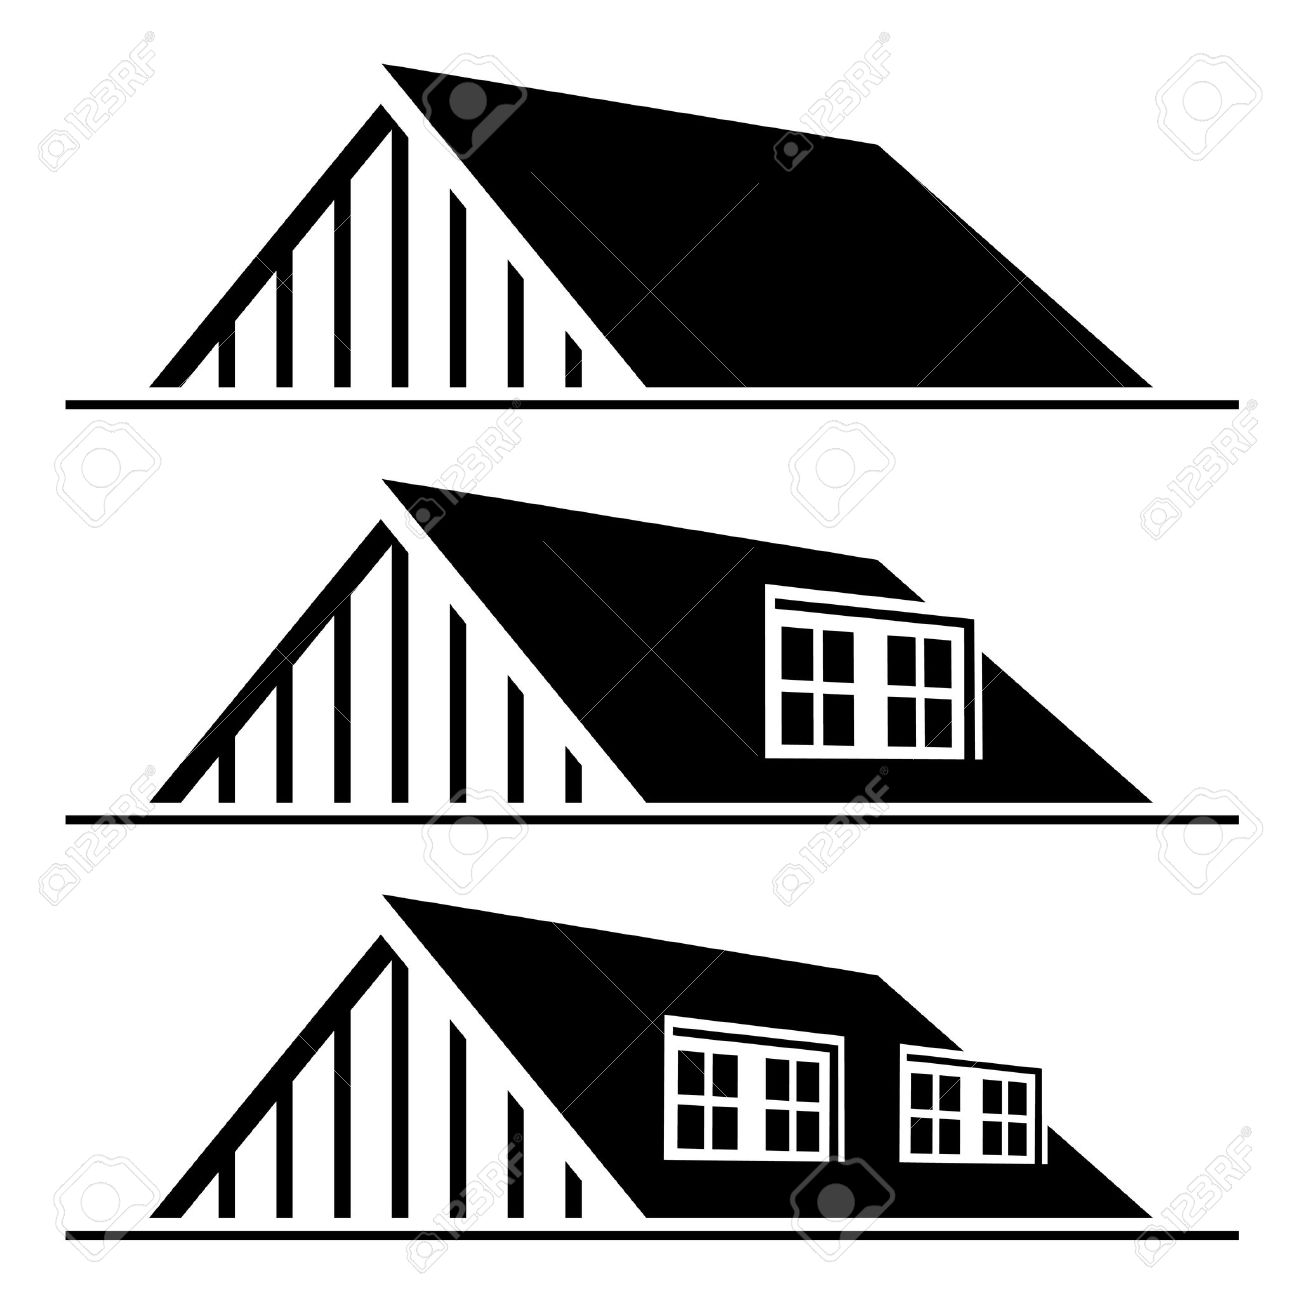 Roof silhouette clipart.